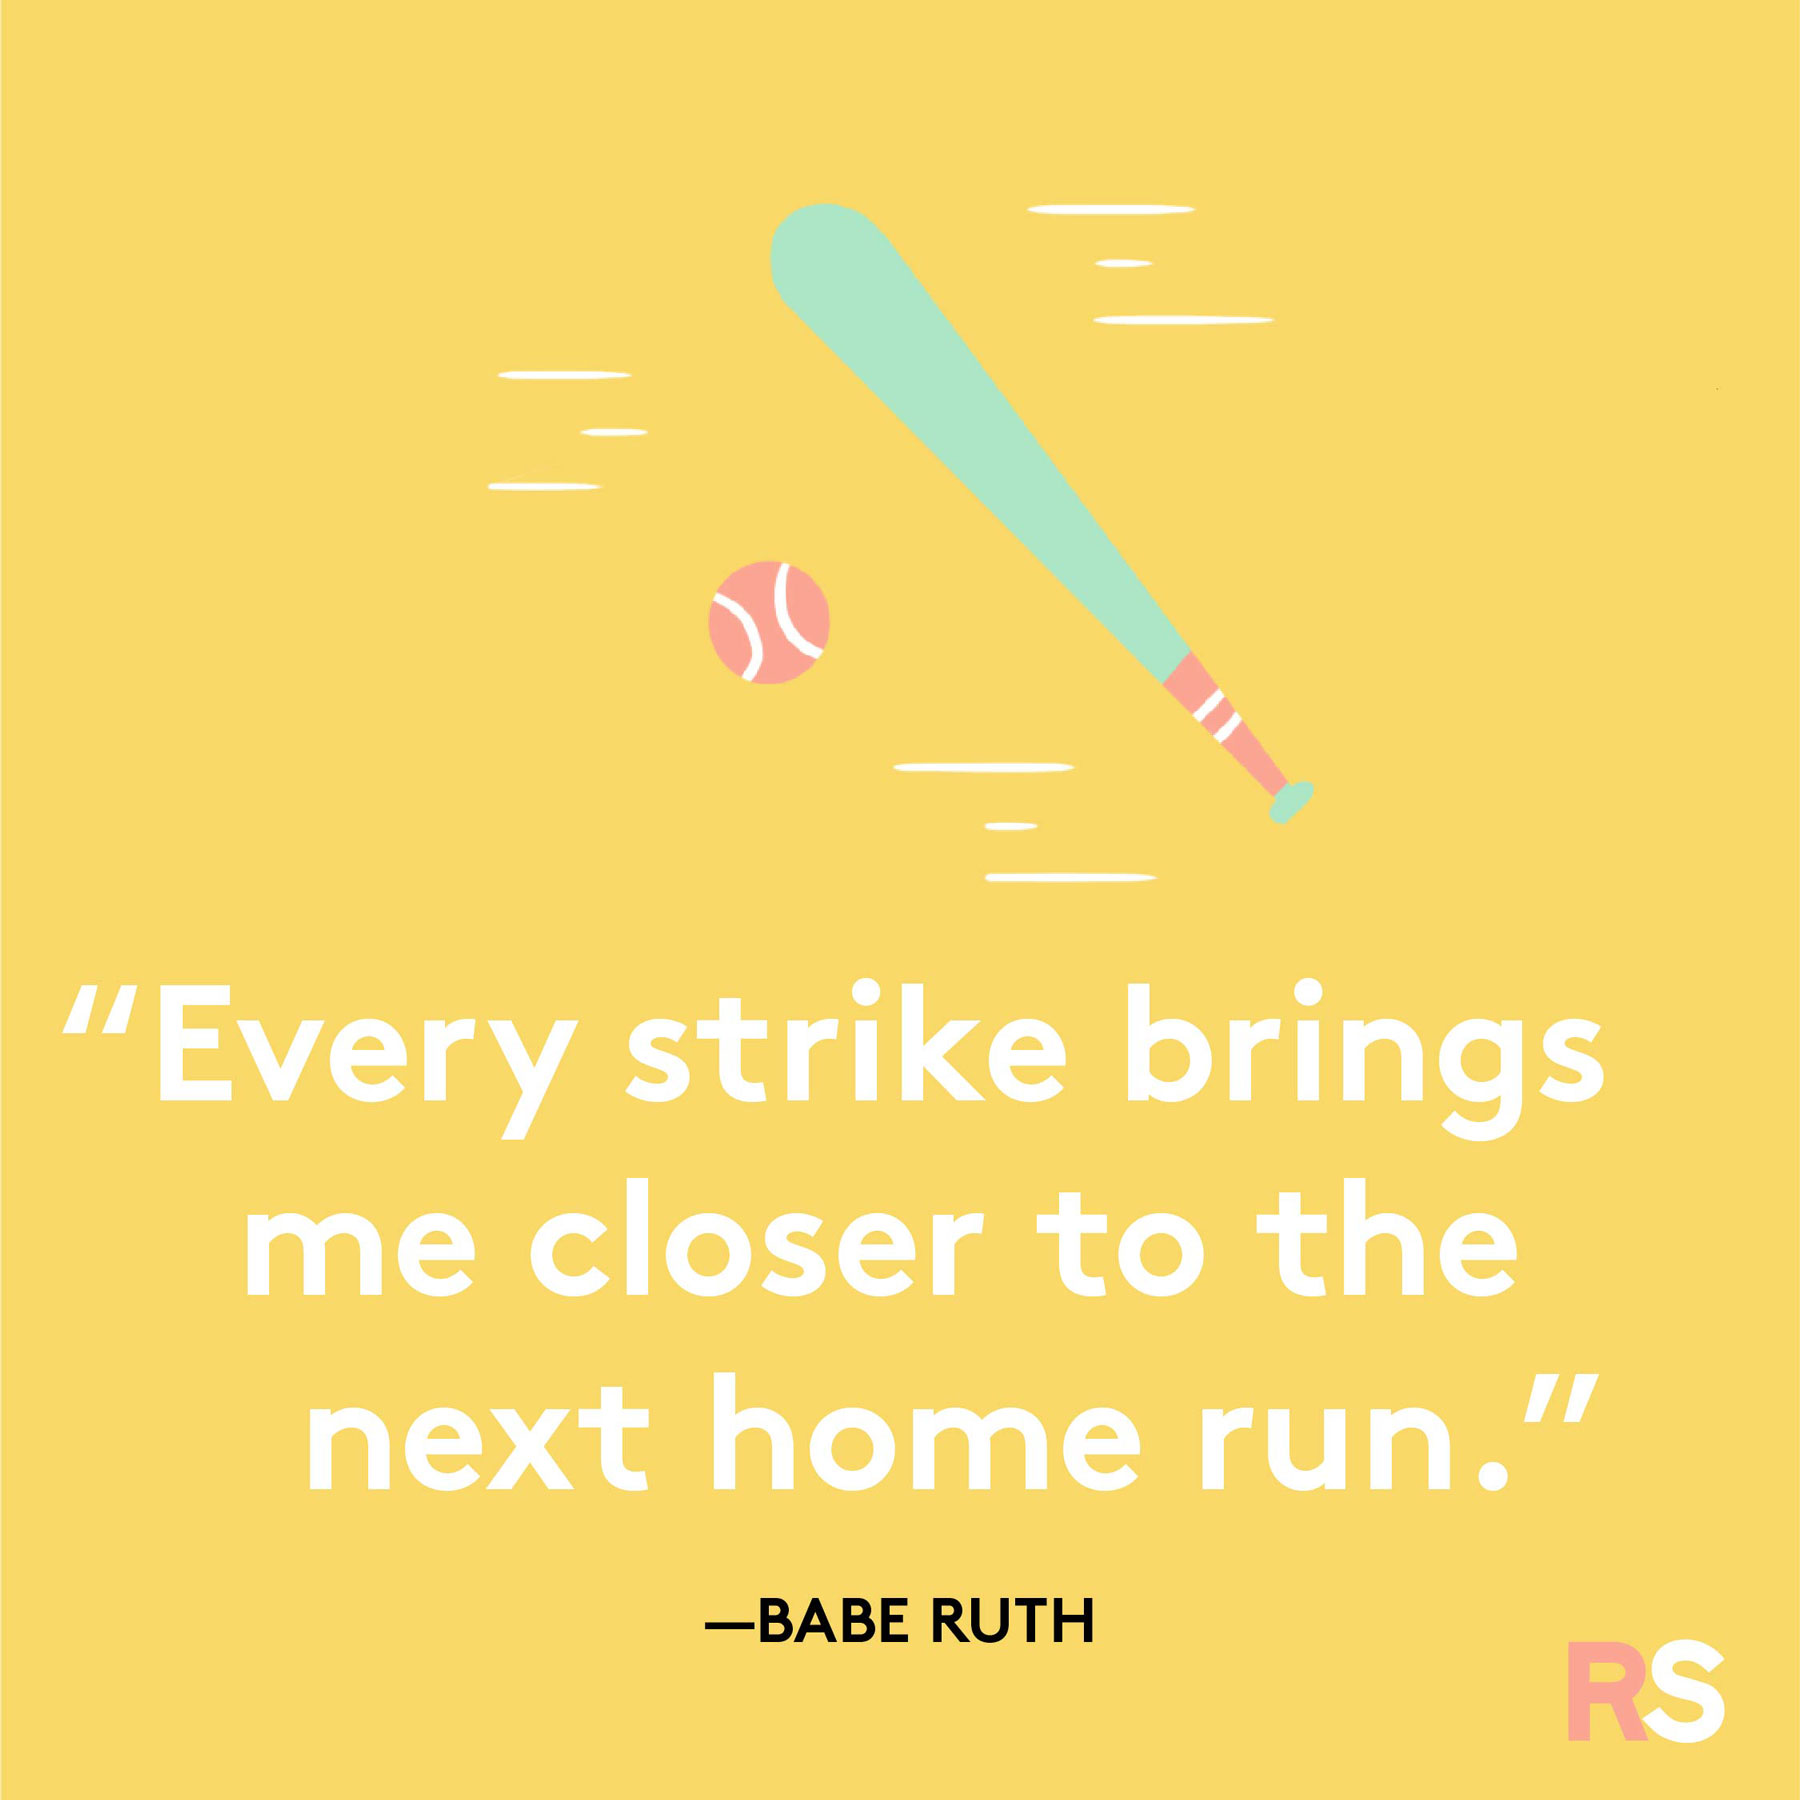 Positive quotes, captions, messages – Babe Ruth motivational quote